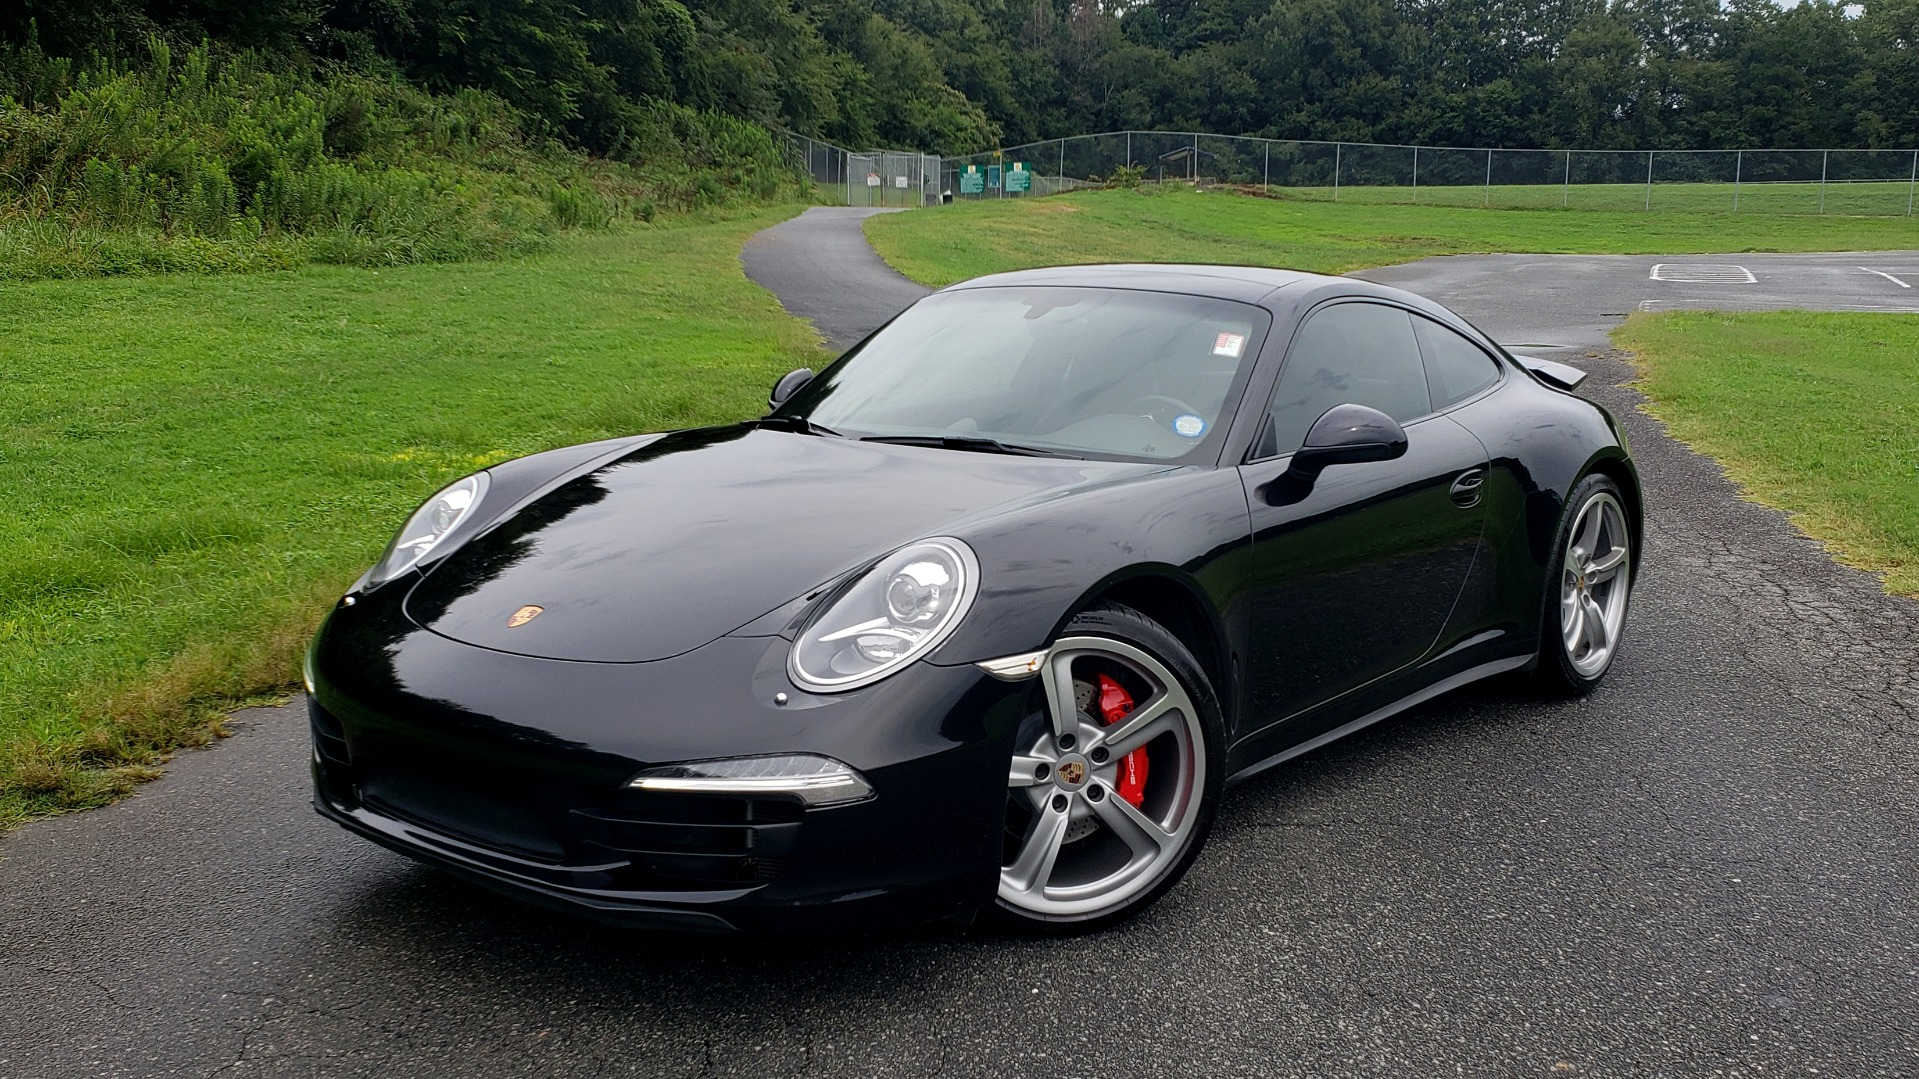 Used 2014 Porsche 911 CARRERA 4S / AWD / 3.8L / PDK / CHRONO / NAV / BOSE / SUNROOF for sale Sold at Formula Imports in Charlotte NC 28227 1